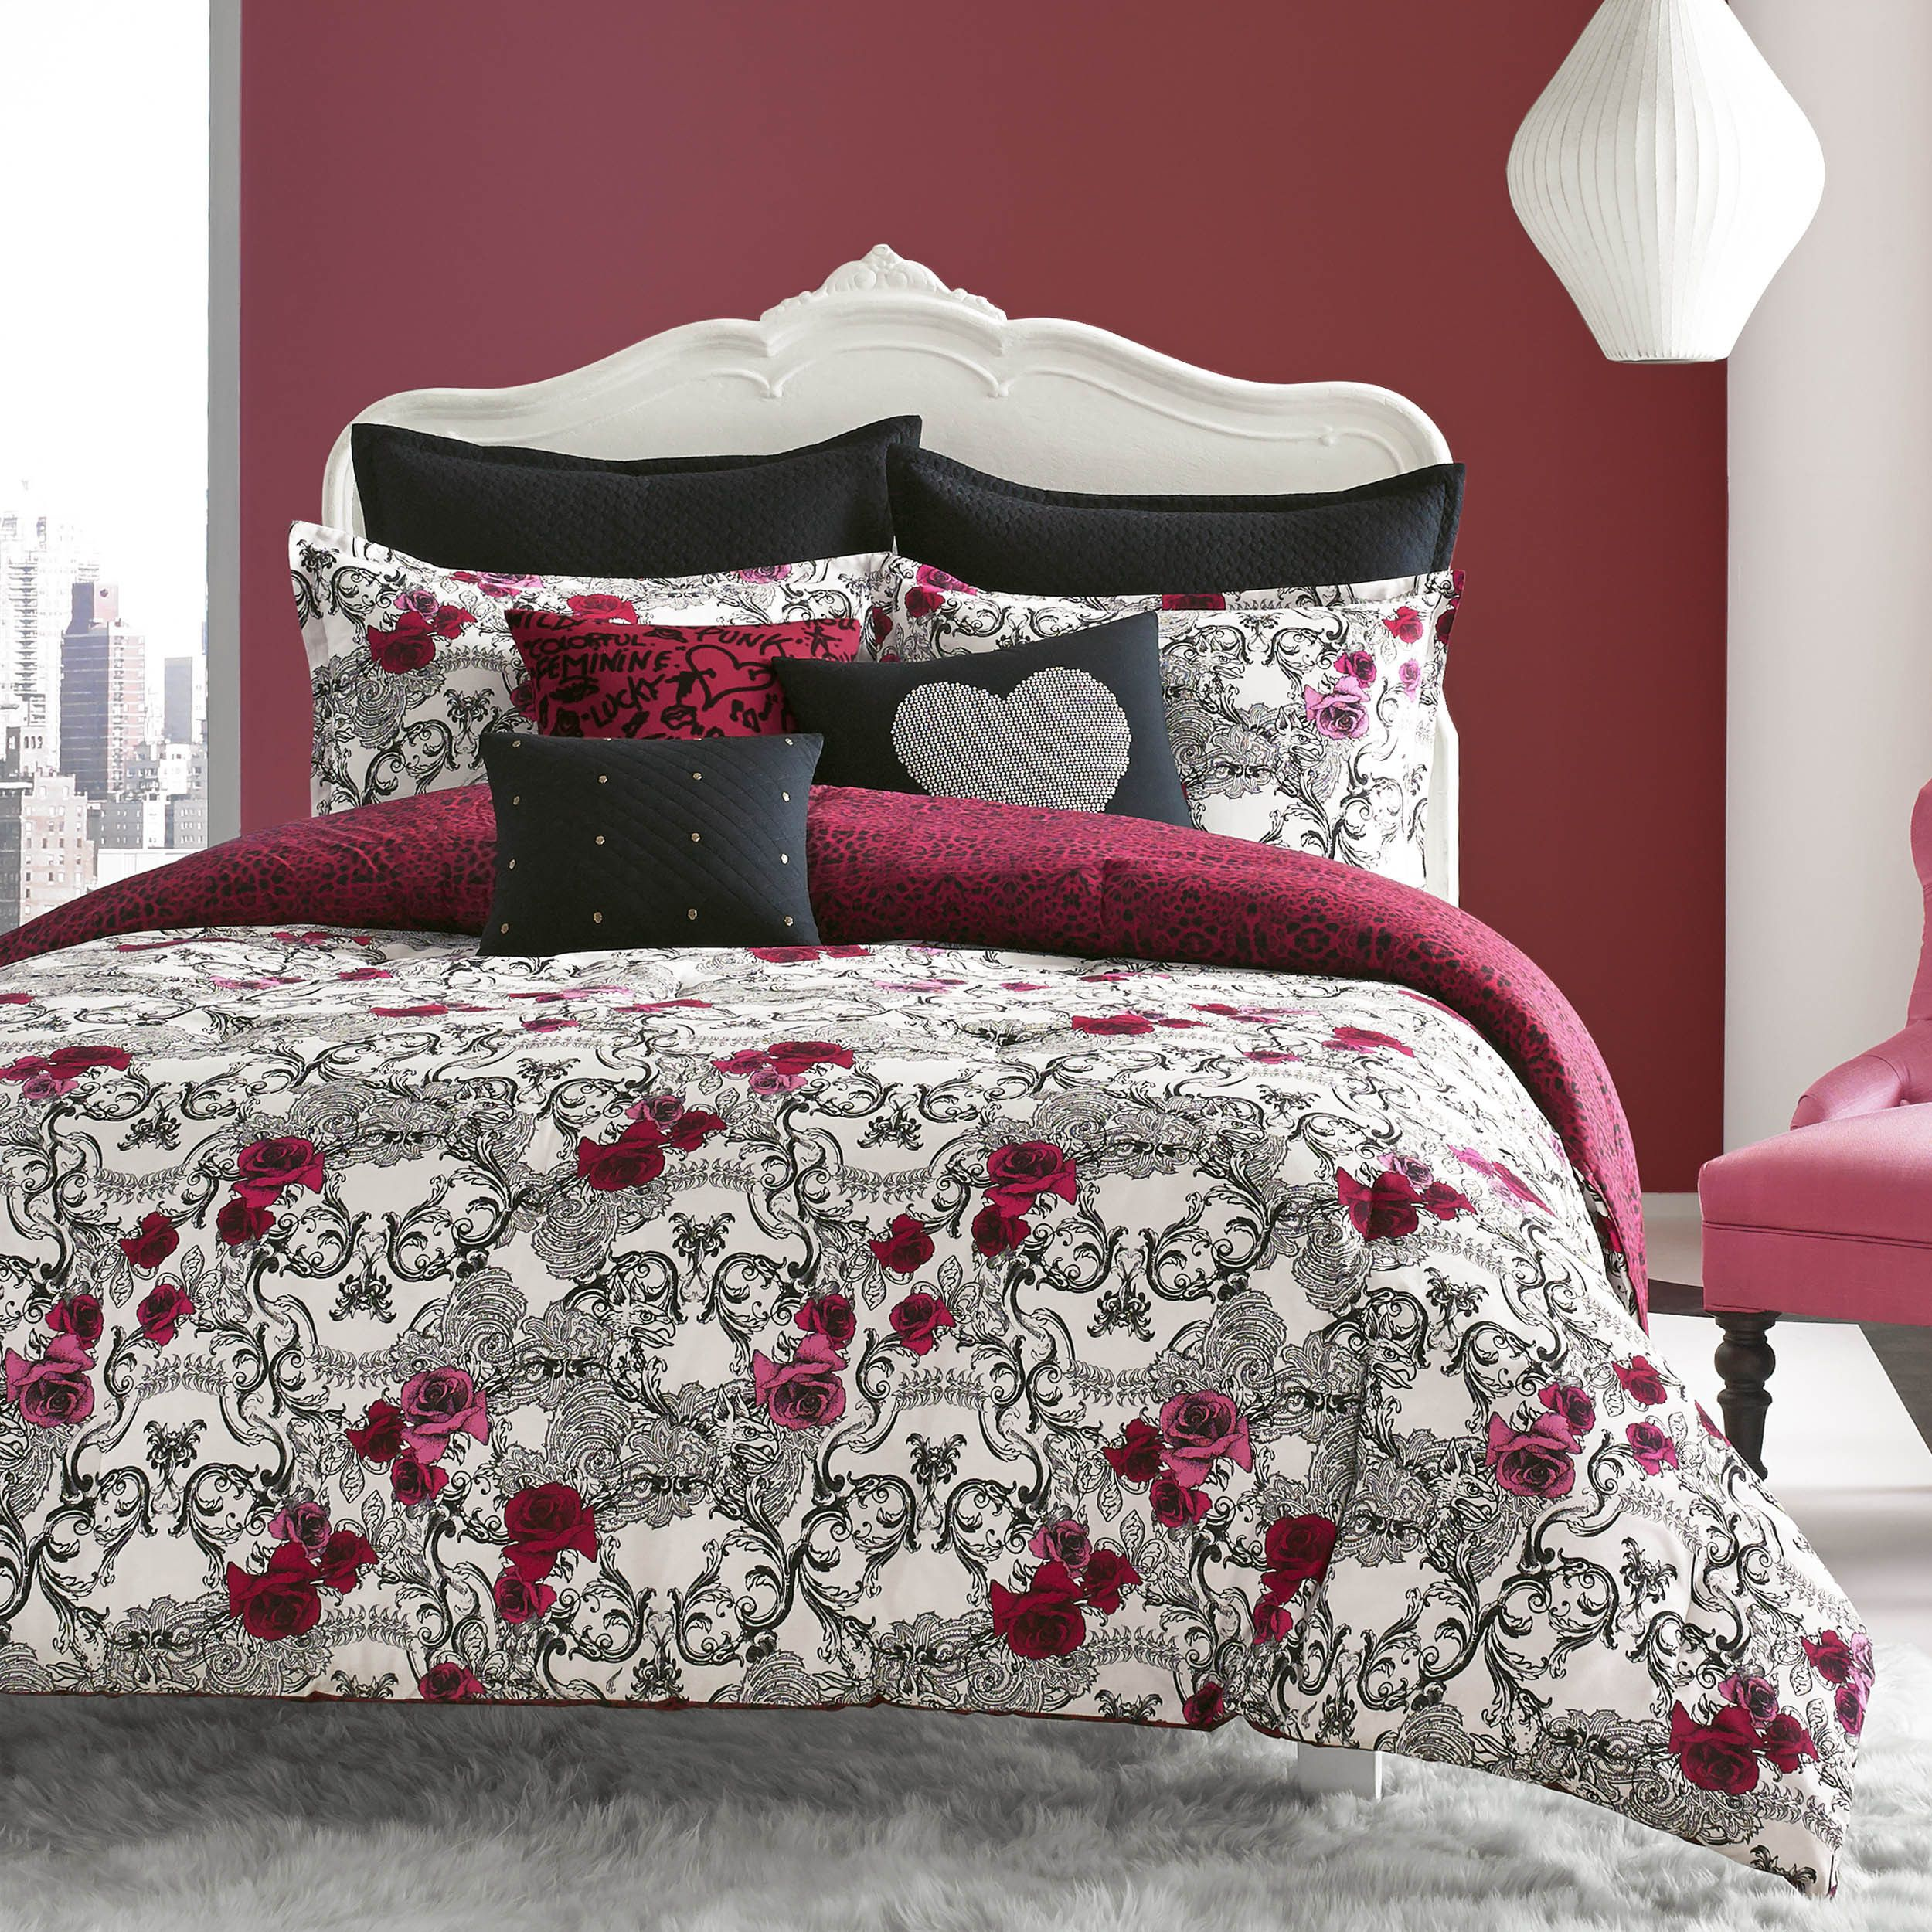 betsey johnson rock out 3-piece comforter setbetsey johnson